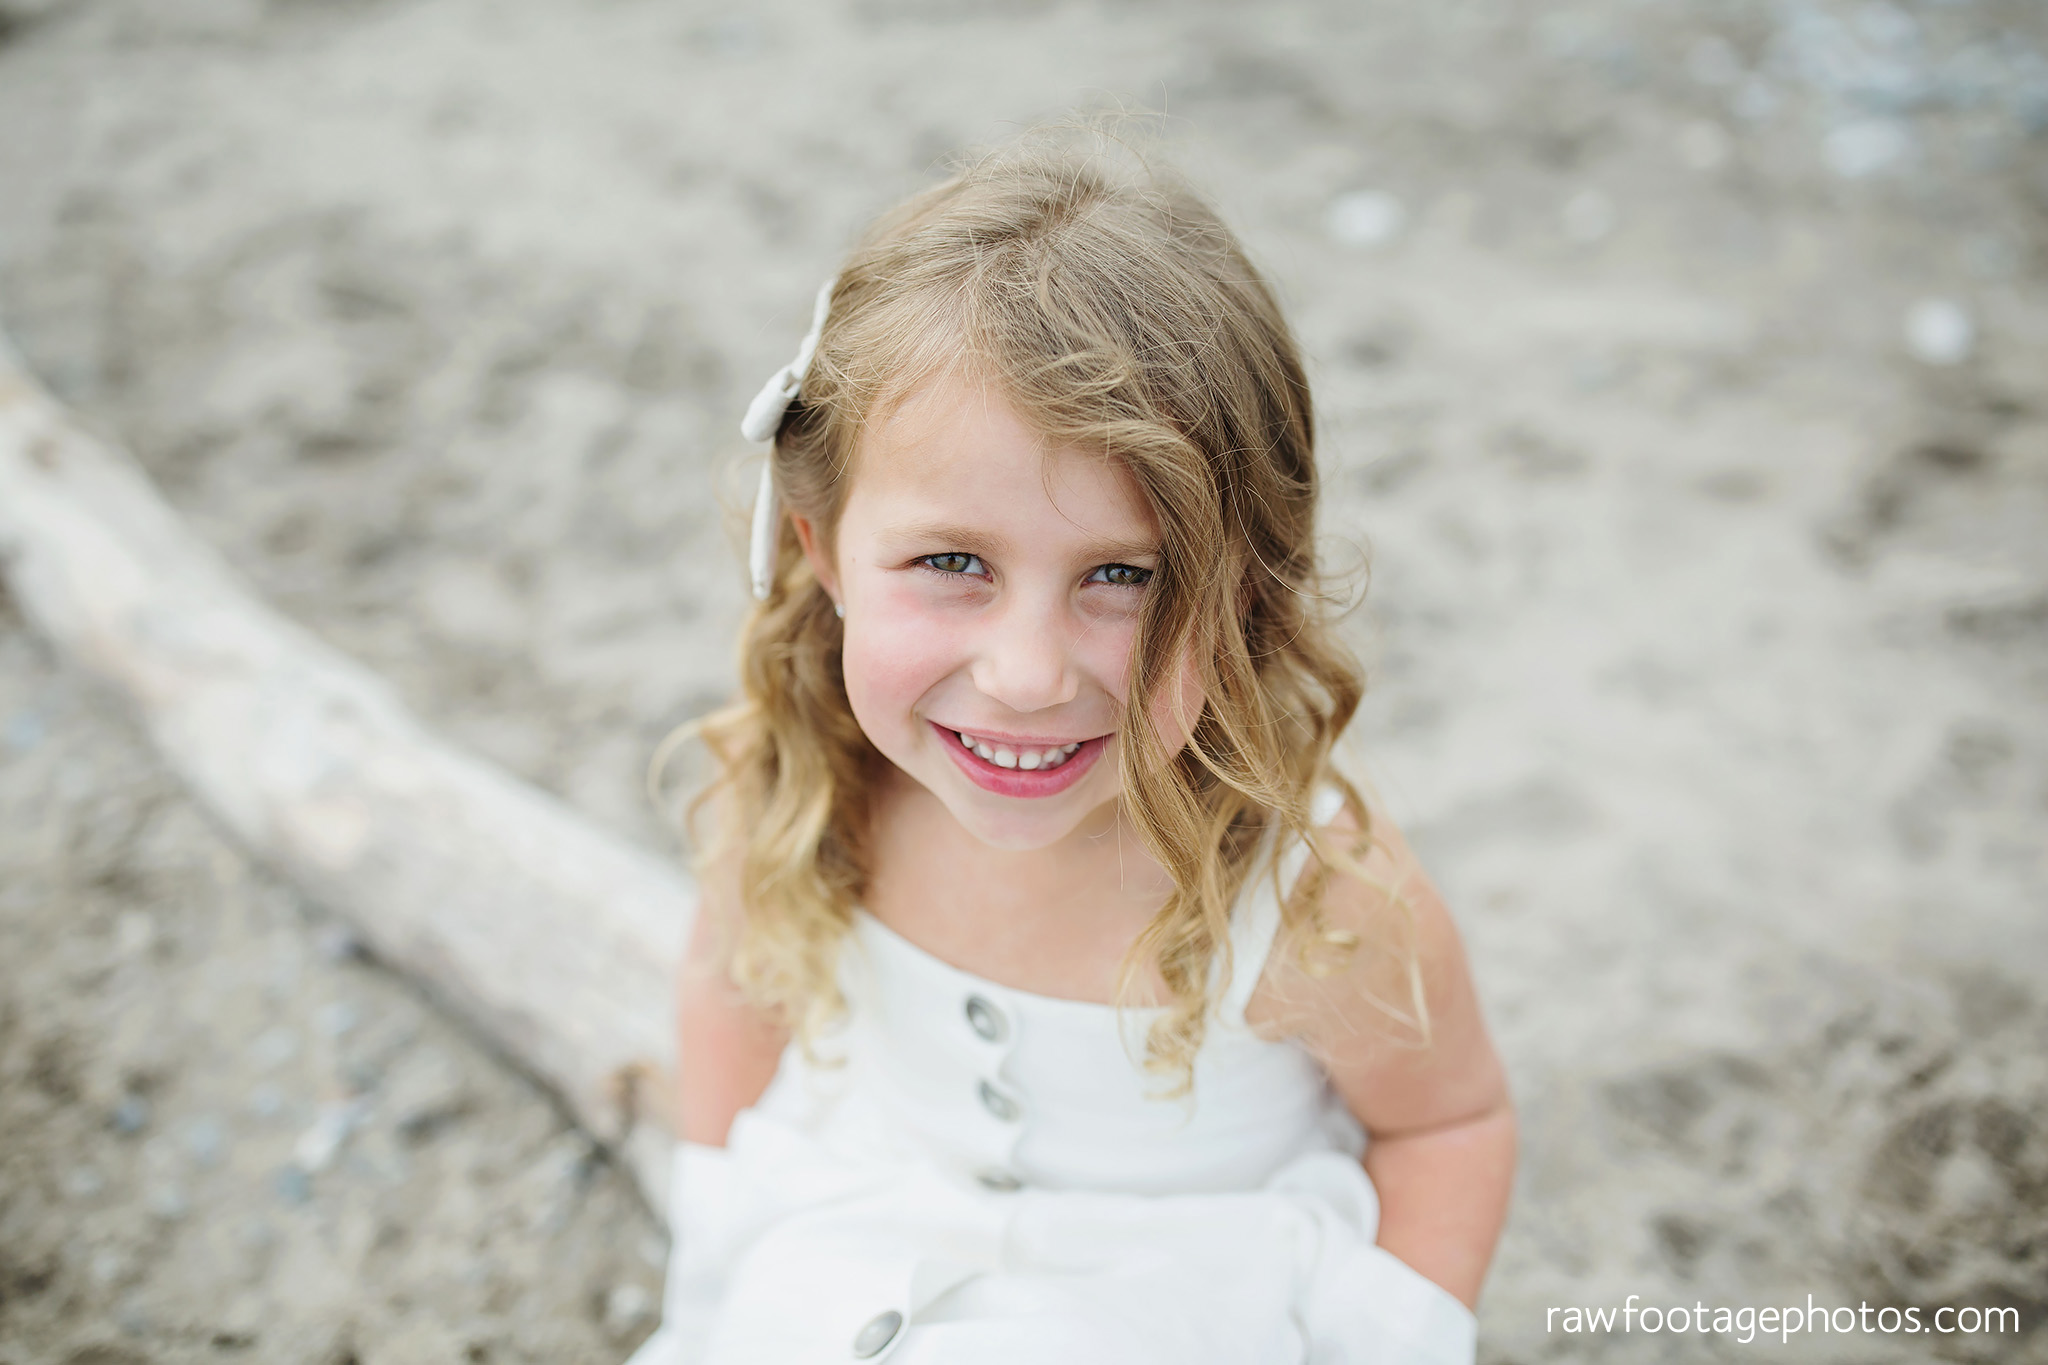 london_ontario_family_photographer-beach_minis-port_stanley_beach-raw_footage_photography057.jpg